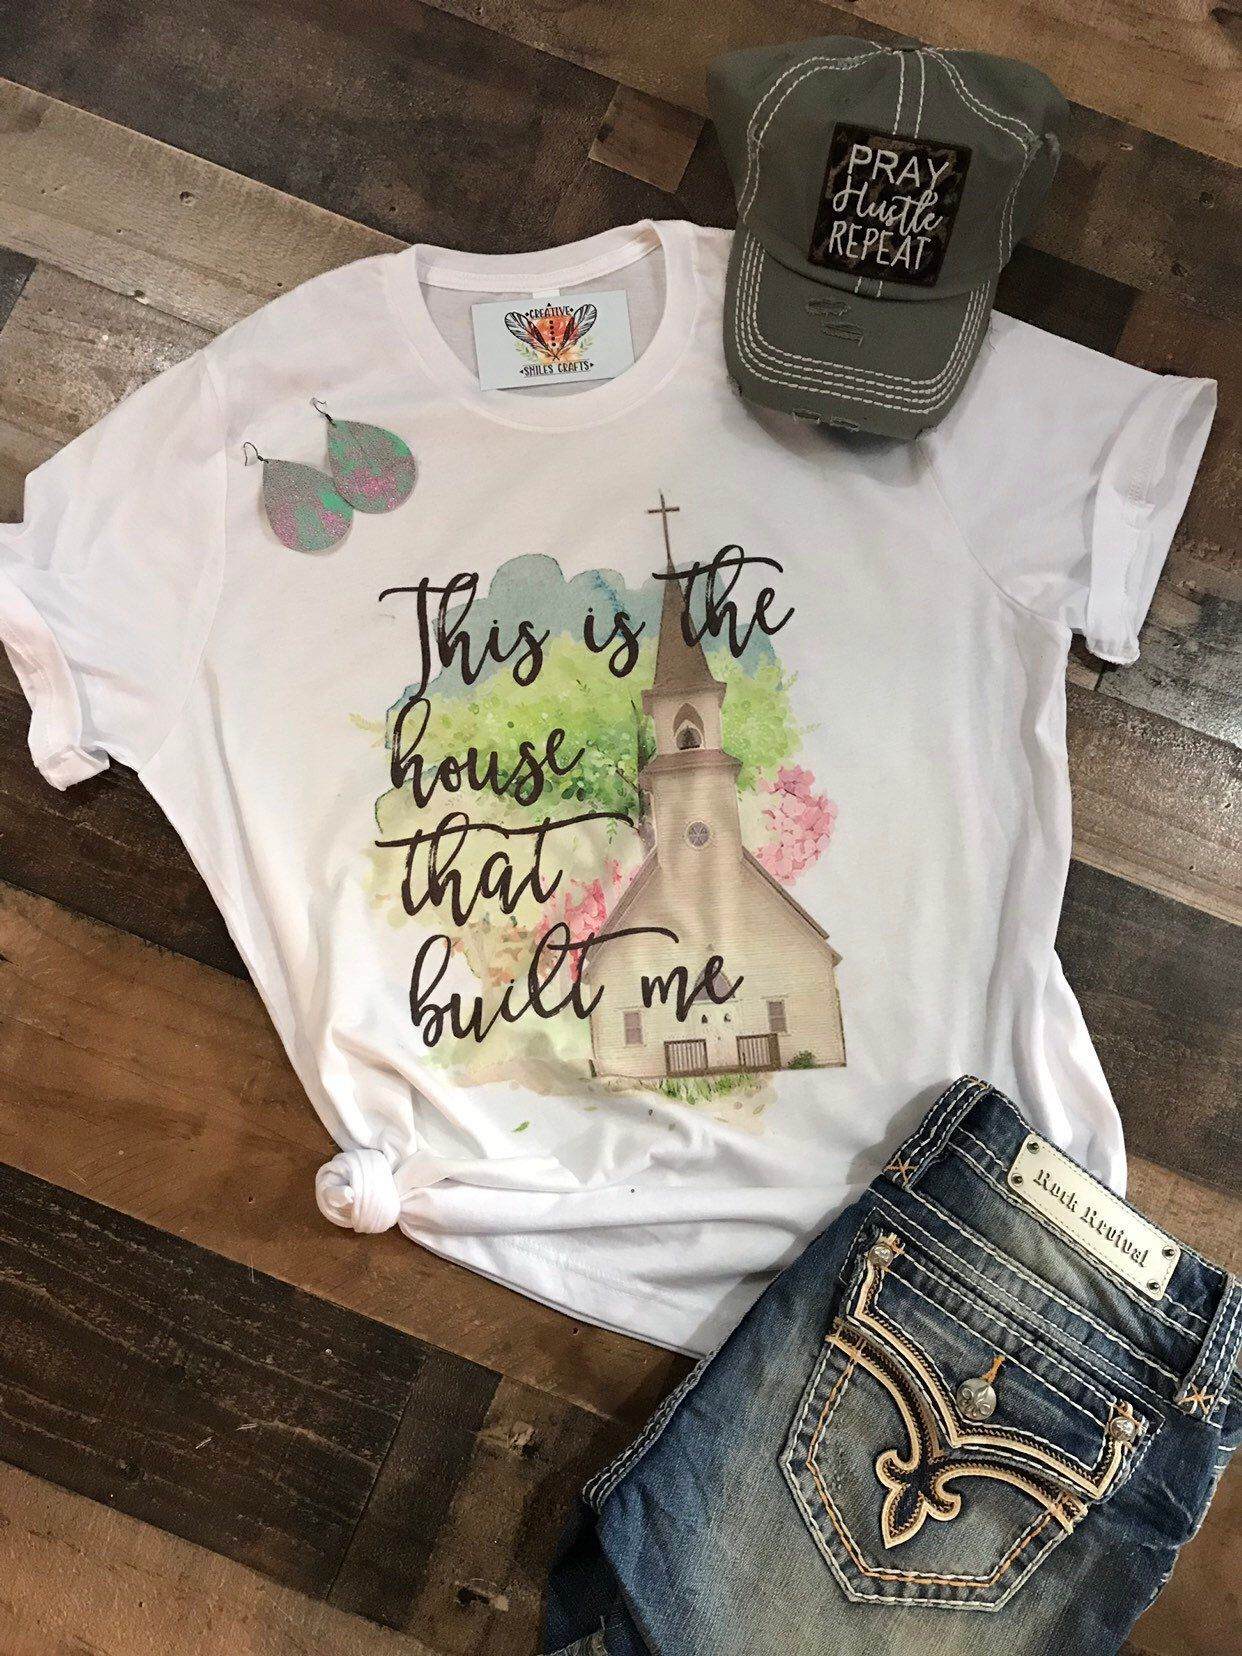 Excited to share this item from my #etsy shop: The house that built me, church tee, church shirt, religious tee, christian tee, easter, easter shirt, unisex tee, Easter clothing, sunday #churchitems Excited to share this item from my #etsy shop: The house that built me, church tee, church shirt, religious tee, christian tee, easter, easter shirt, unisex tee, Easter clothing, sunday #churchitems